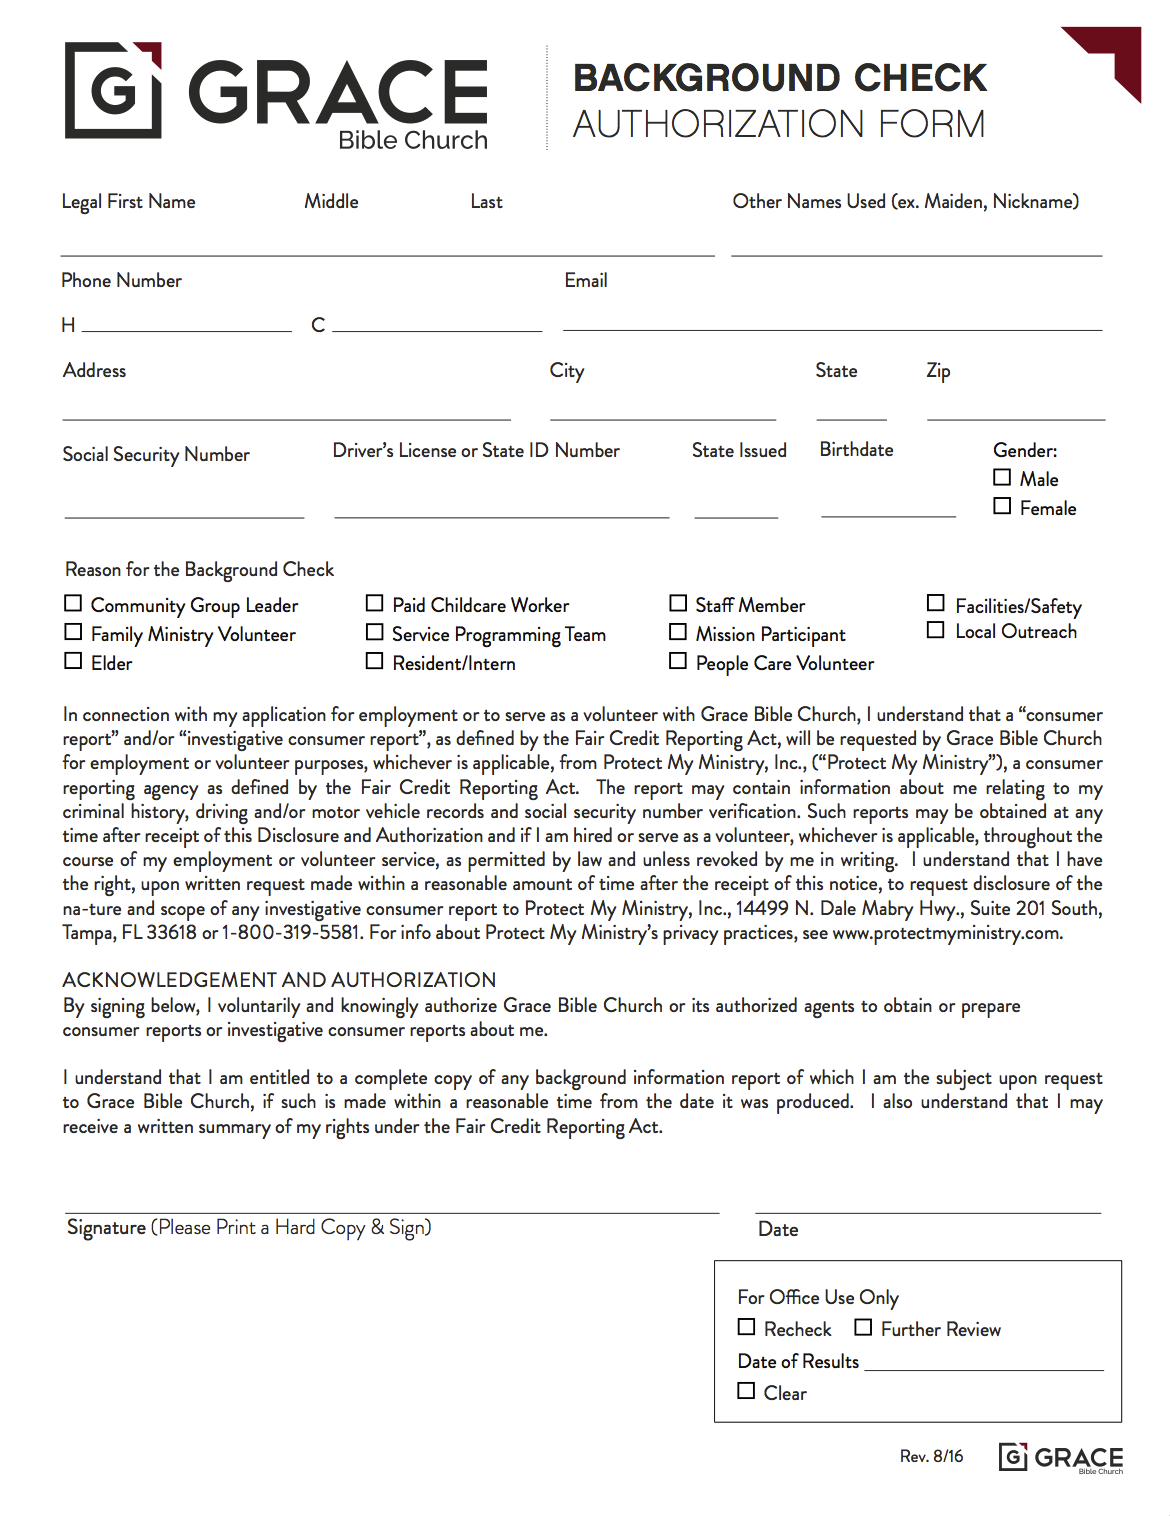 Background Check Form -